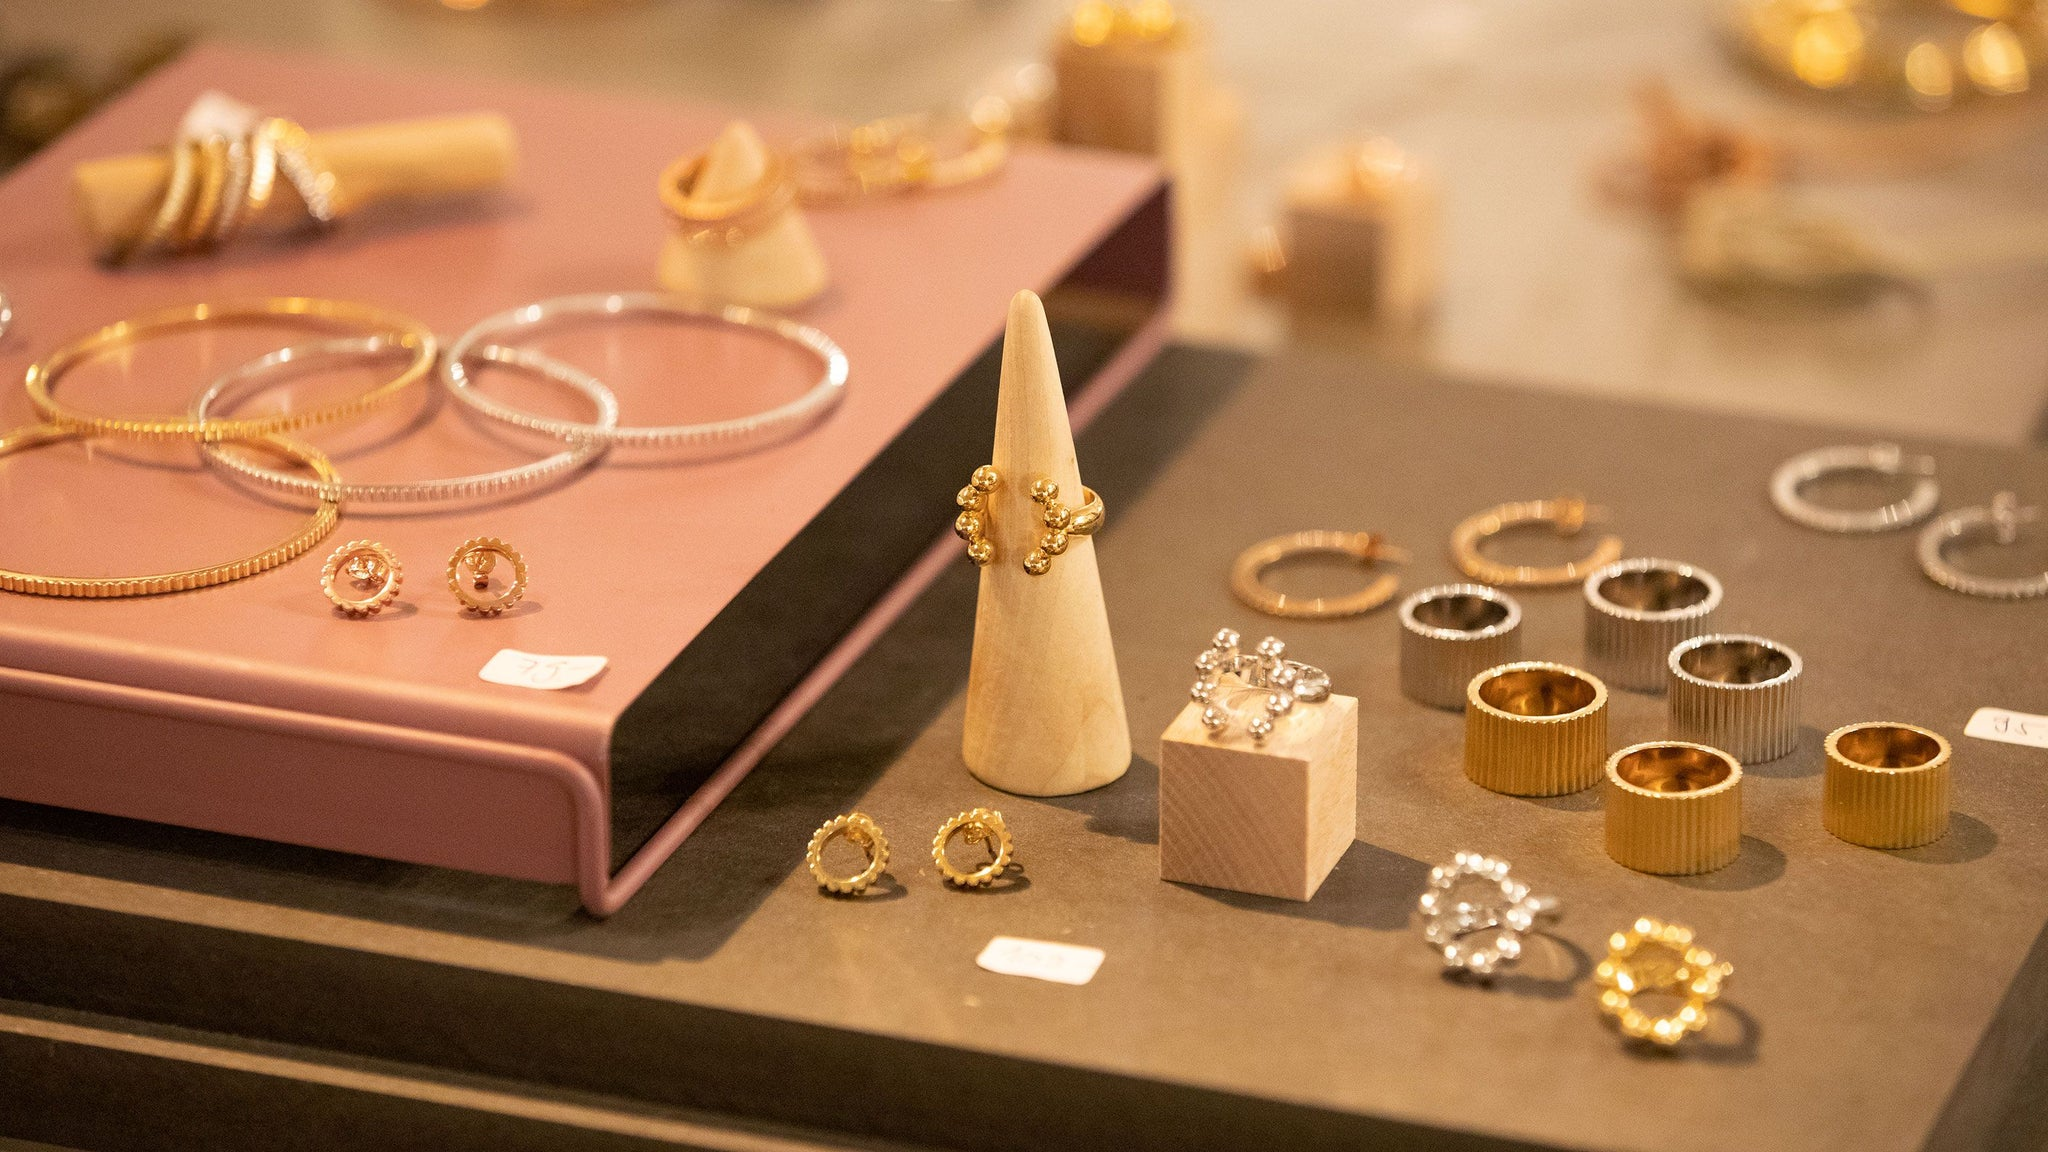 V DESIGN LAB Jewellery featured on hello Zurich & the Next Xmas Markets